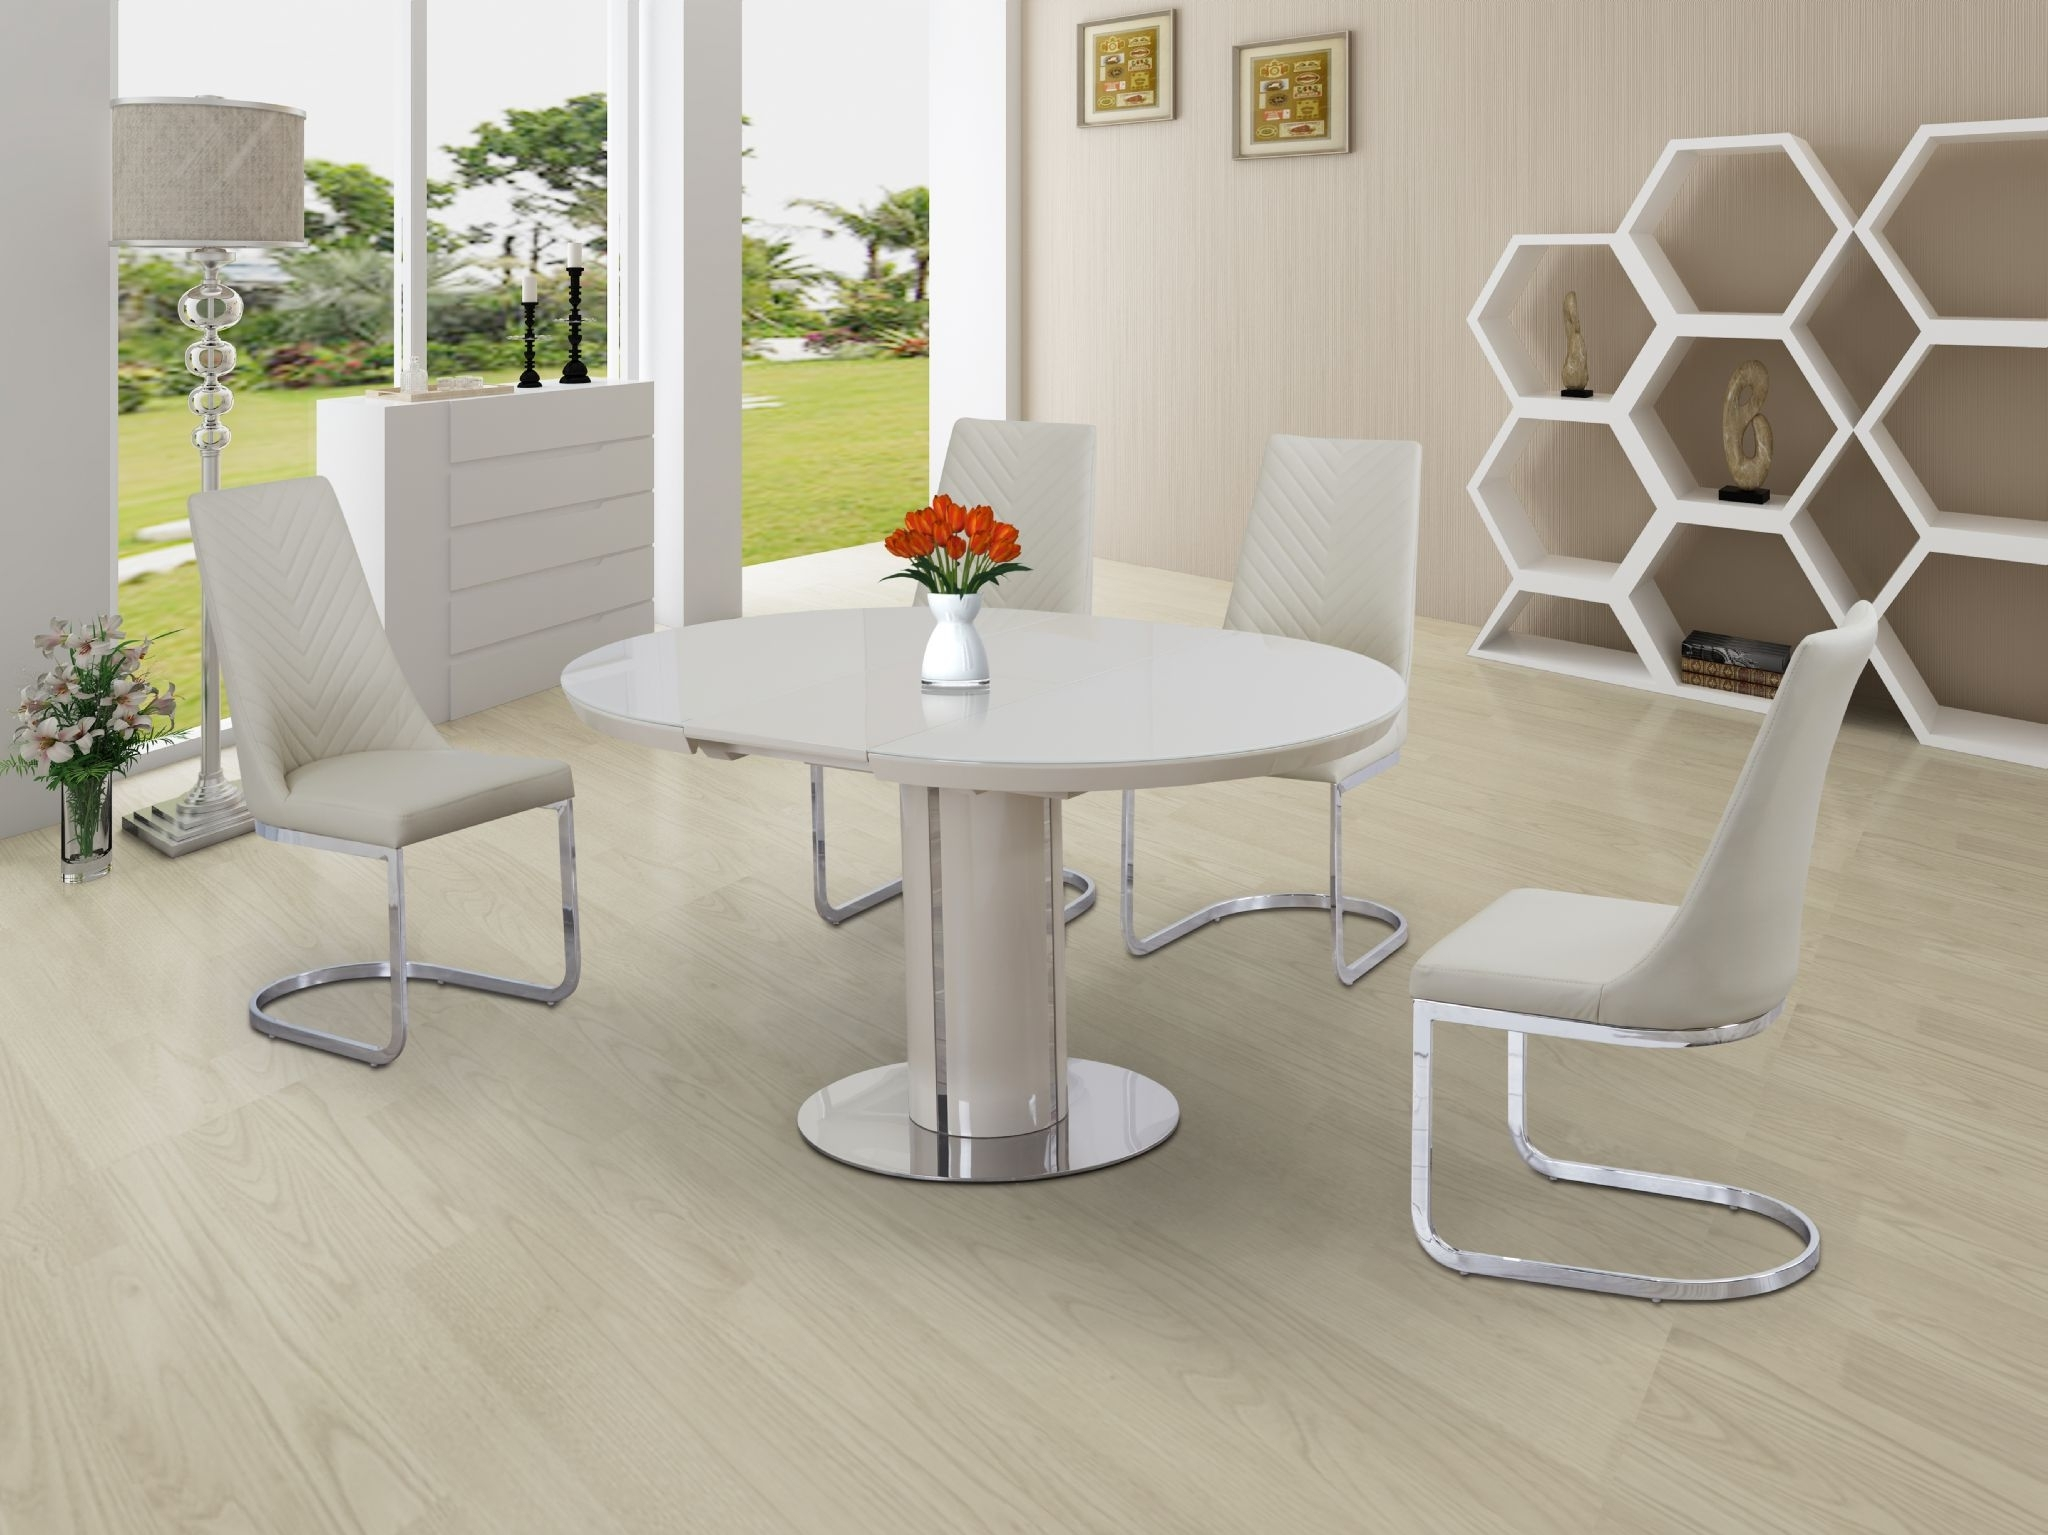 Preferred Buy Cream Small Round Extendable Dining Table Today With Regard To Small White Extending Dining Tables (View 2 of 25)